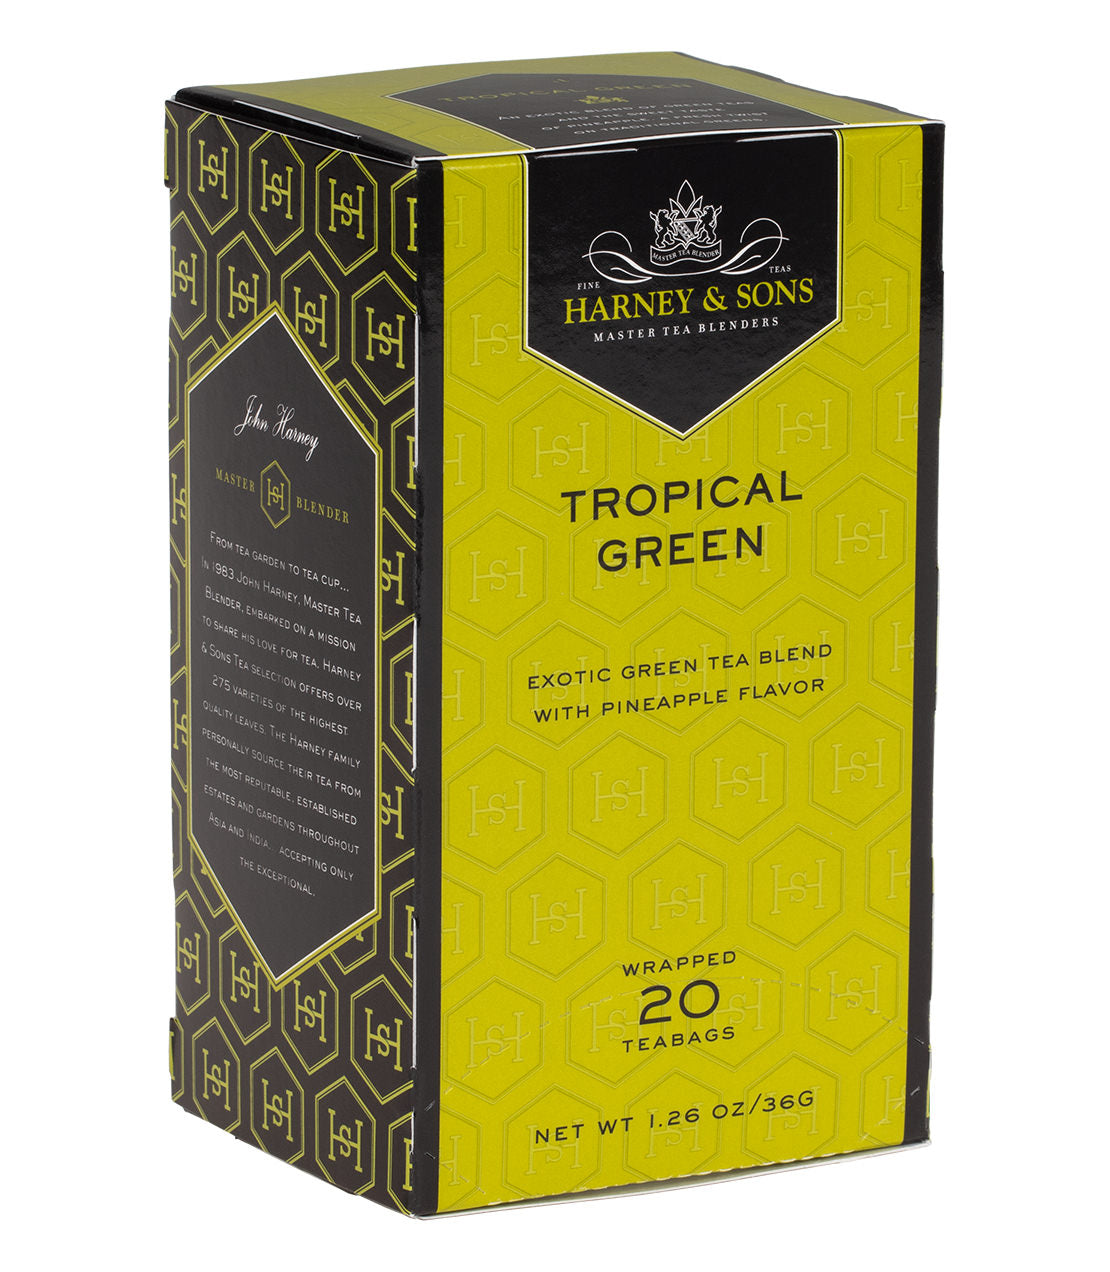 HARNEY AND SONS TROPICAL GREEN TEA